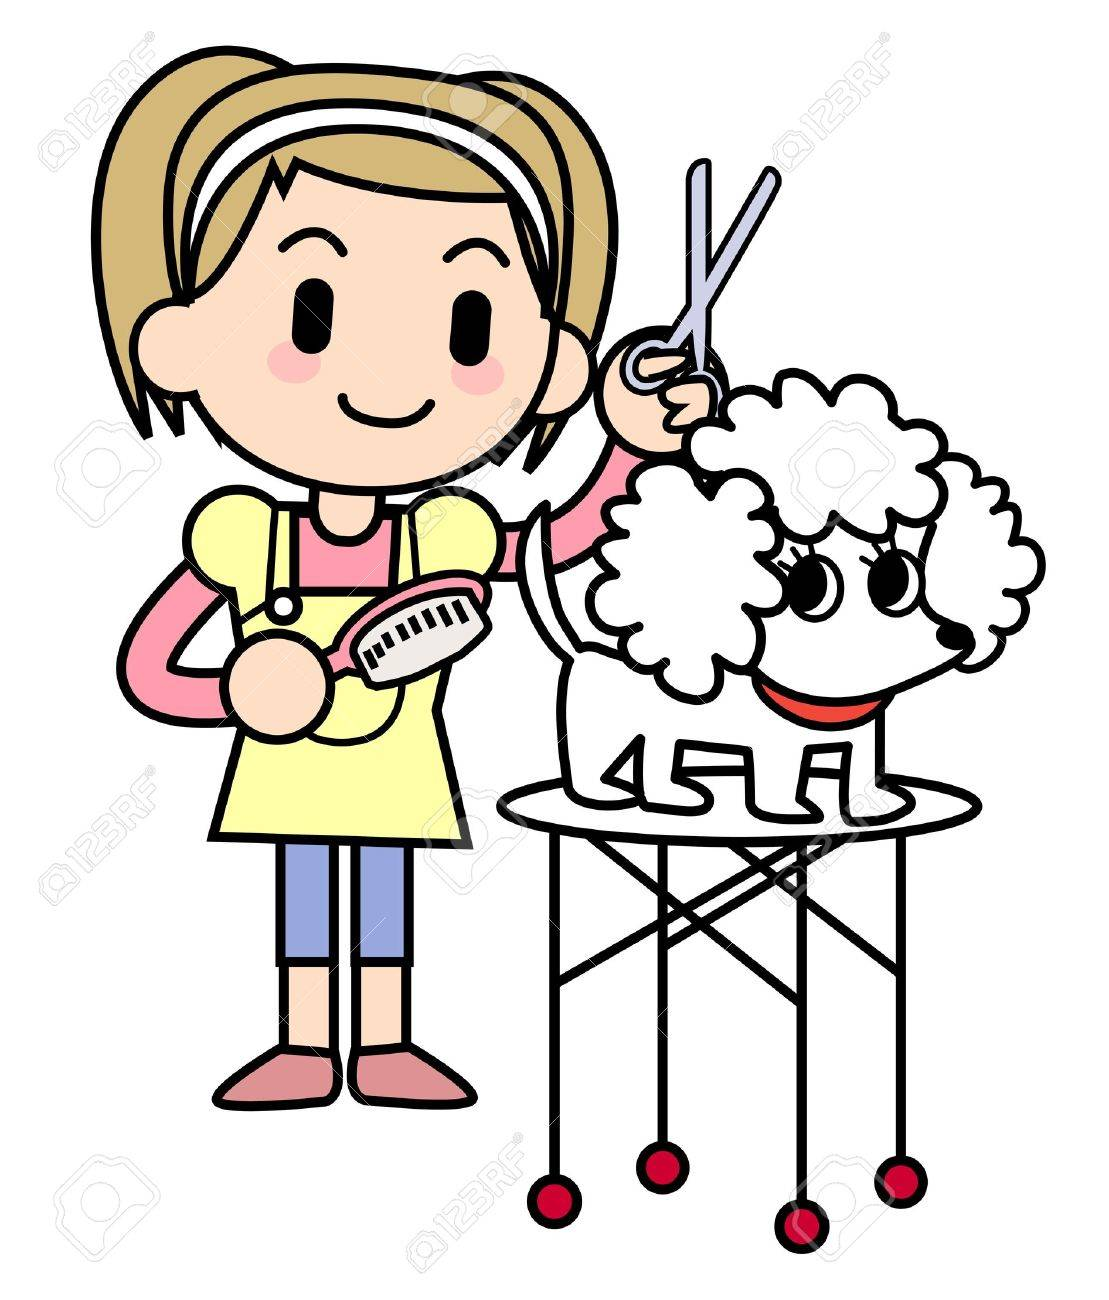 dog groomer stock photo picture and royalty free image image 15372997 rh 123rf com dog grooming logo clip art dog grooming clip art free